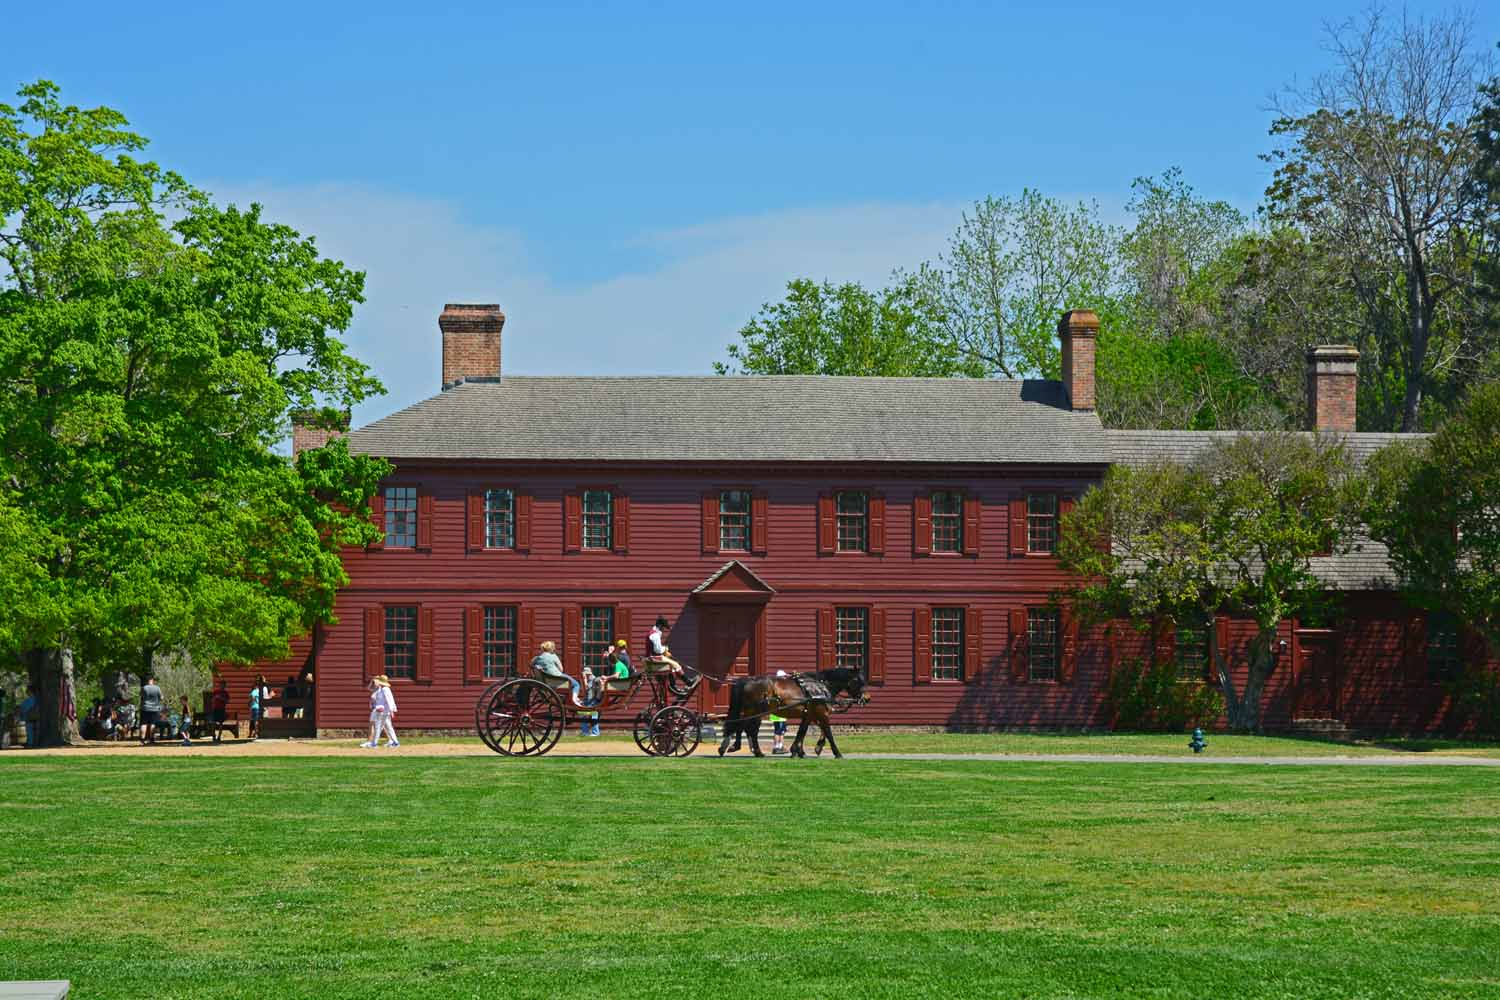 Colonial Williamsburg will hold your interest for several days if you let it.